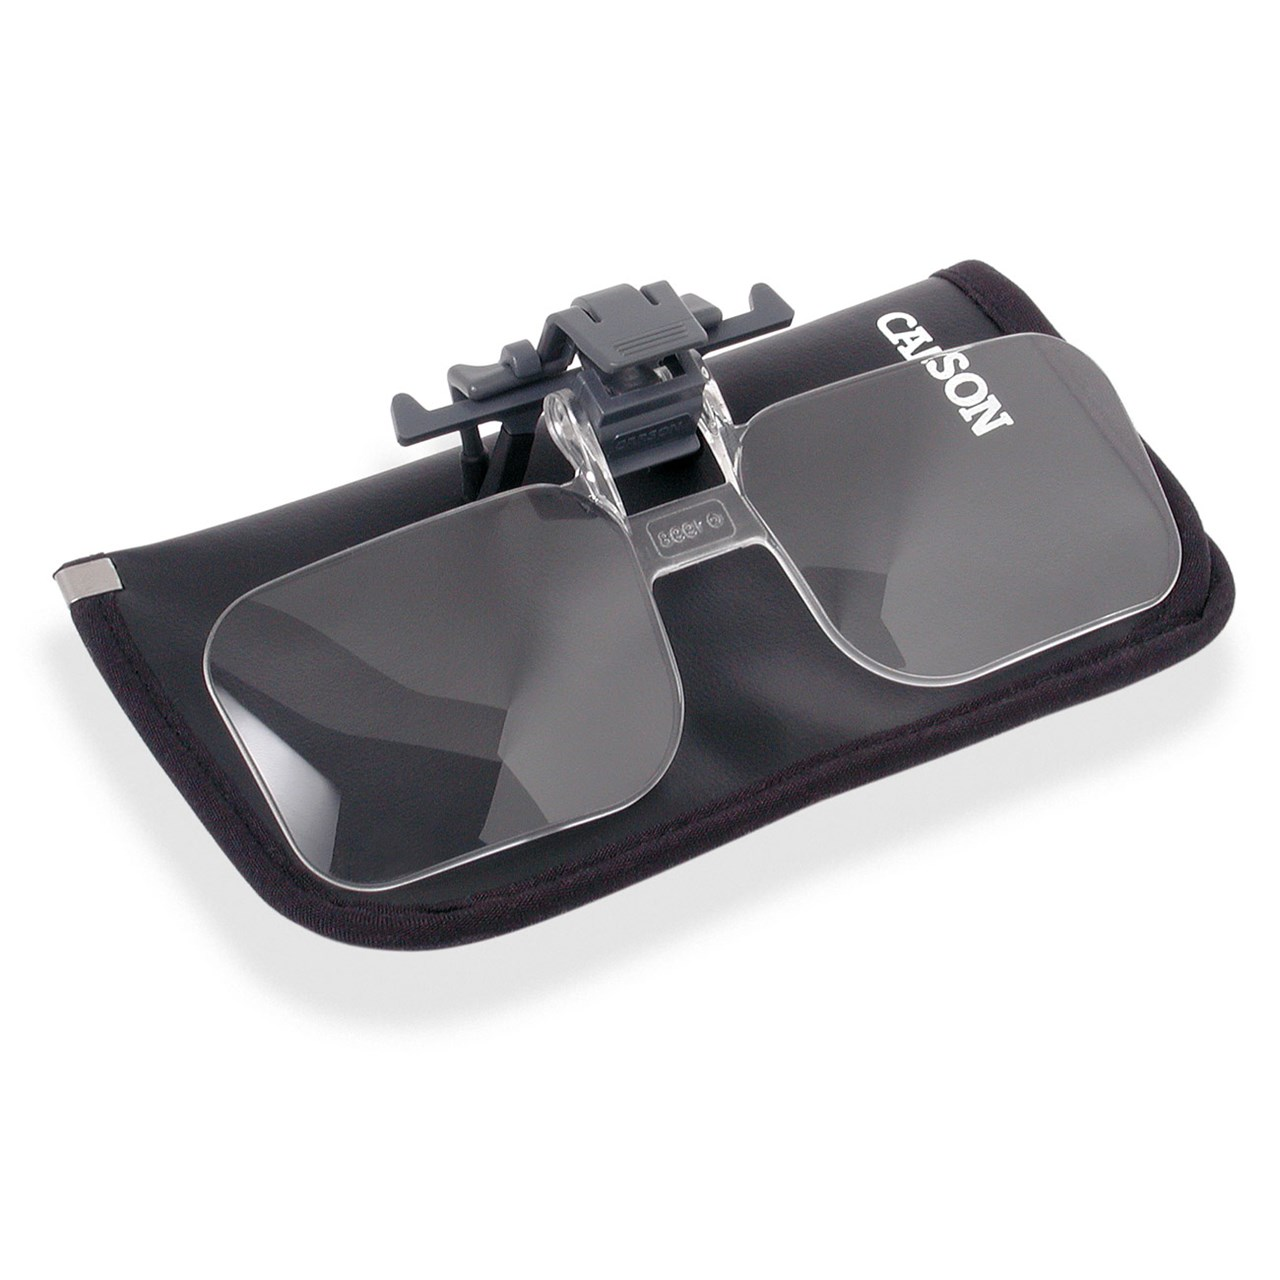 Maxiaids Clip And Flip Magnifying Glass 4 00d